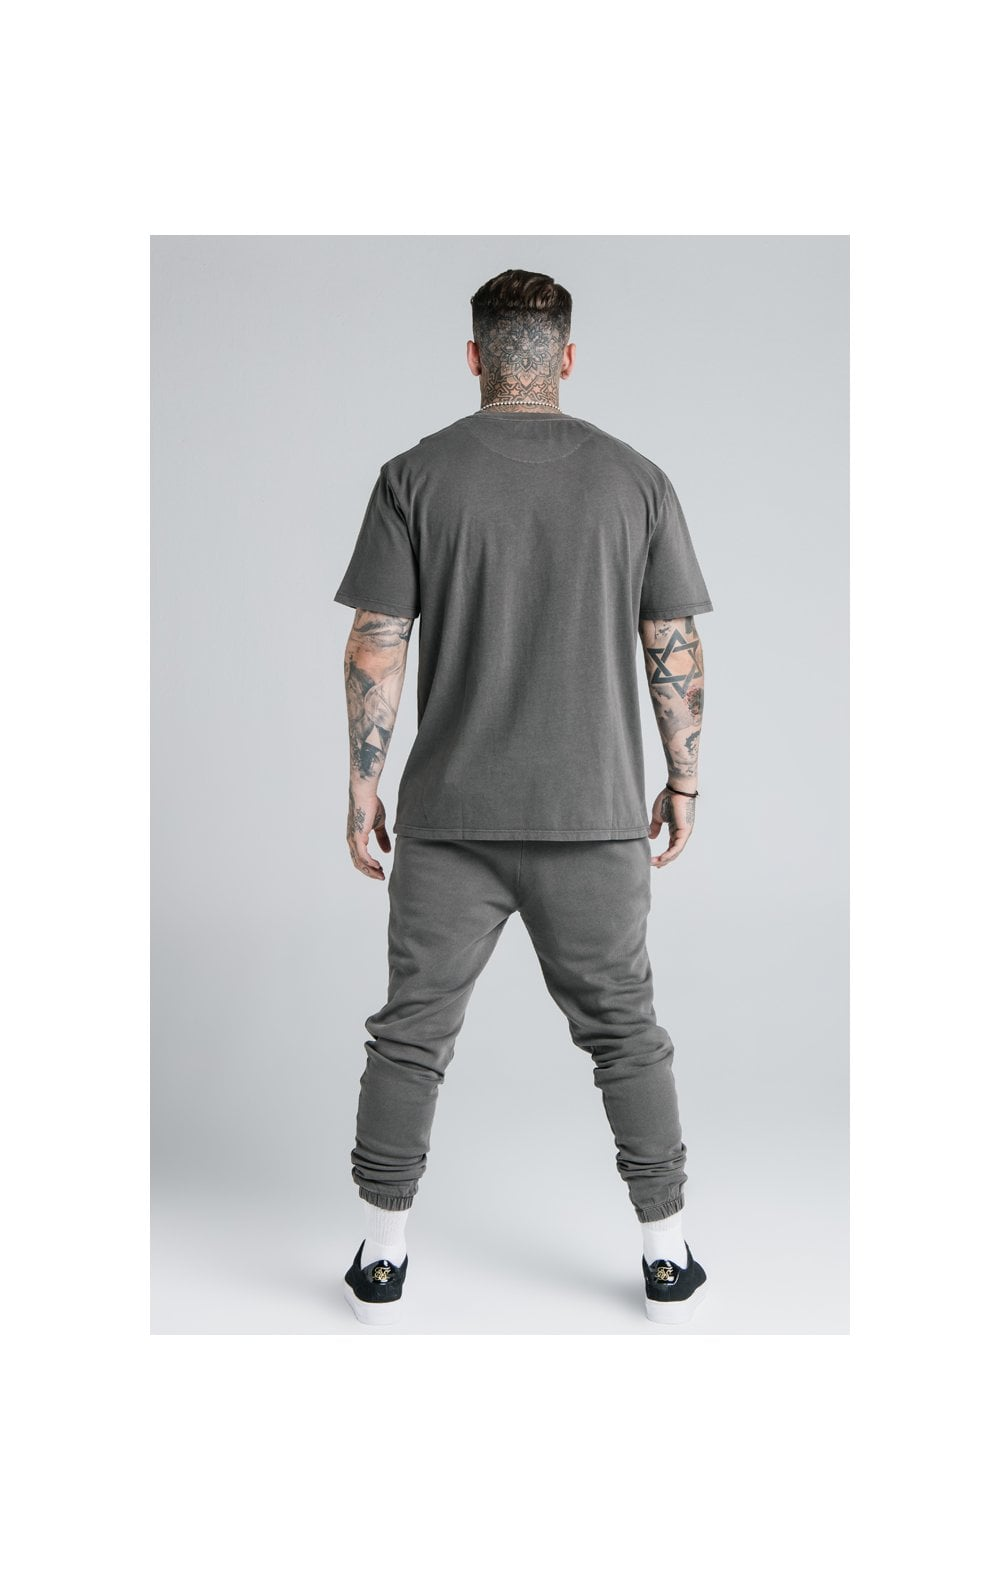 Load image into Gallery viewer, SikSilk X Steve Aoki S/S Oversize Essential Tee – Washed Grey (7)